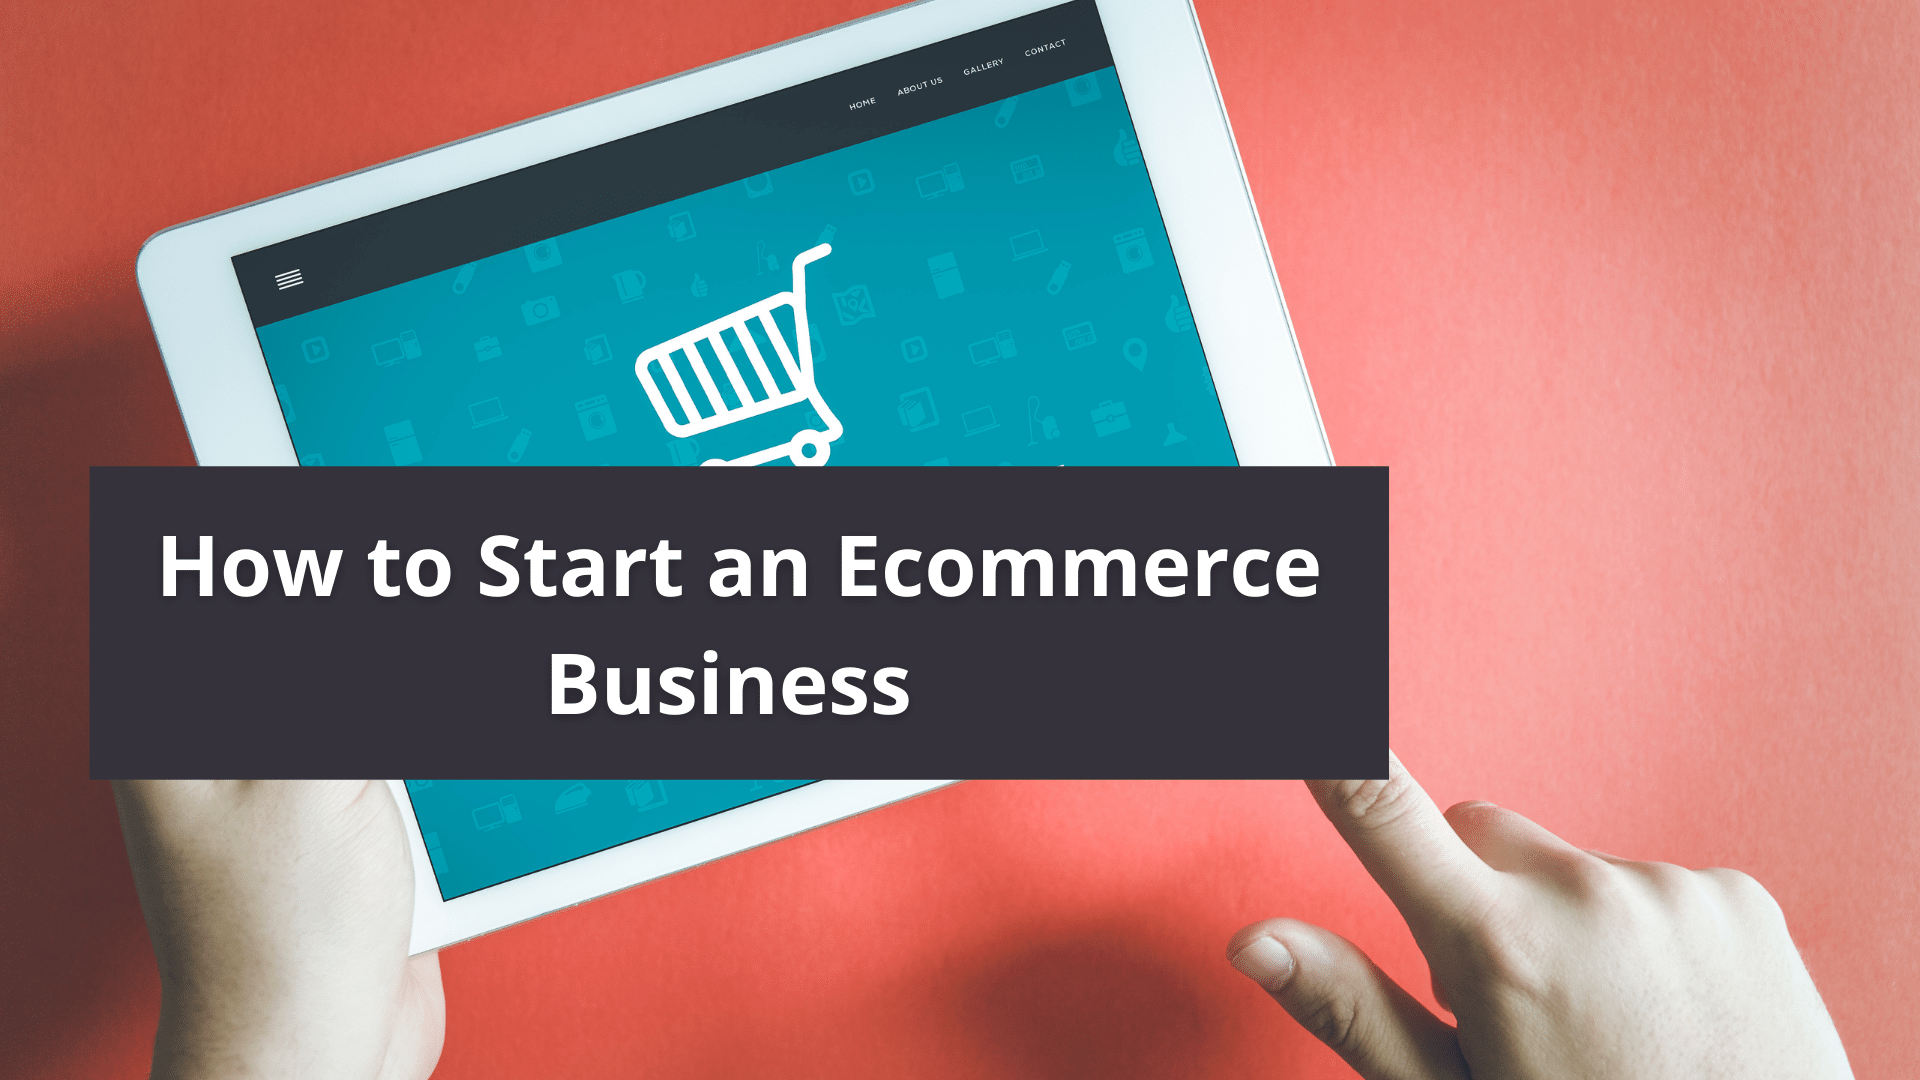 How to Start an Ecommerce Business - Easy Steps to Get Started With an Ecommerce Business 8